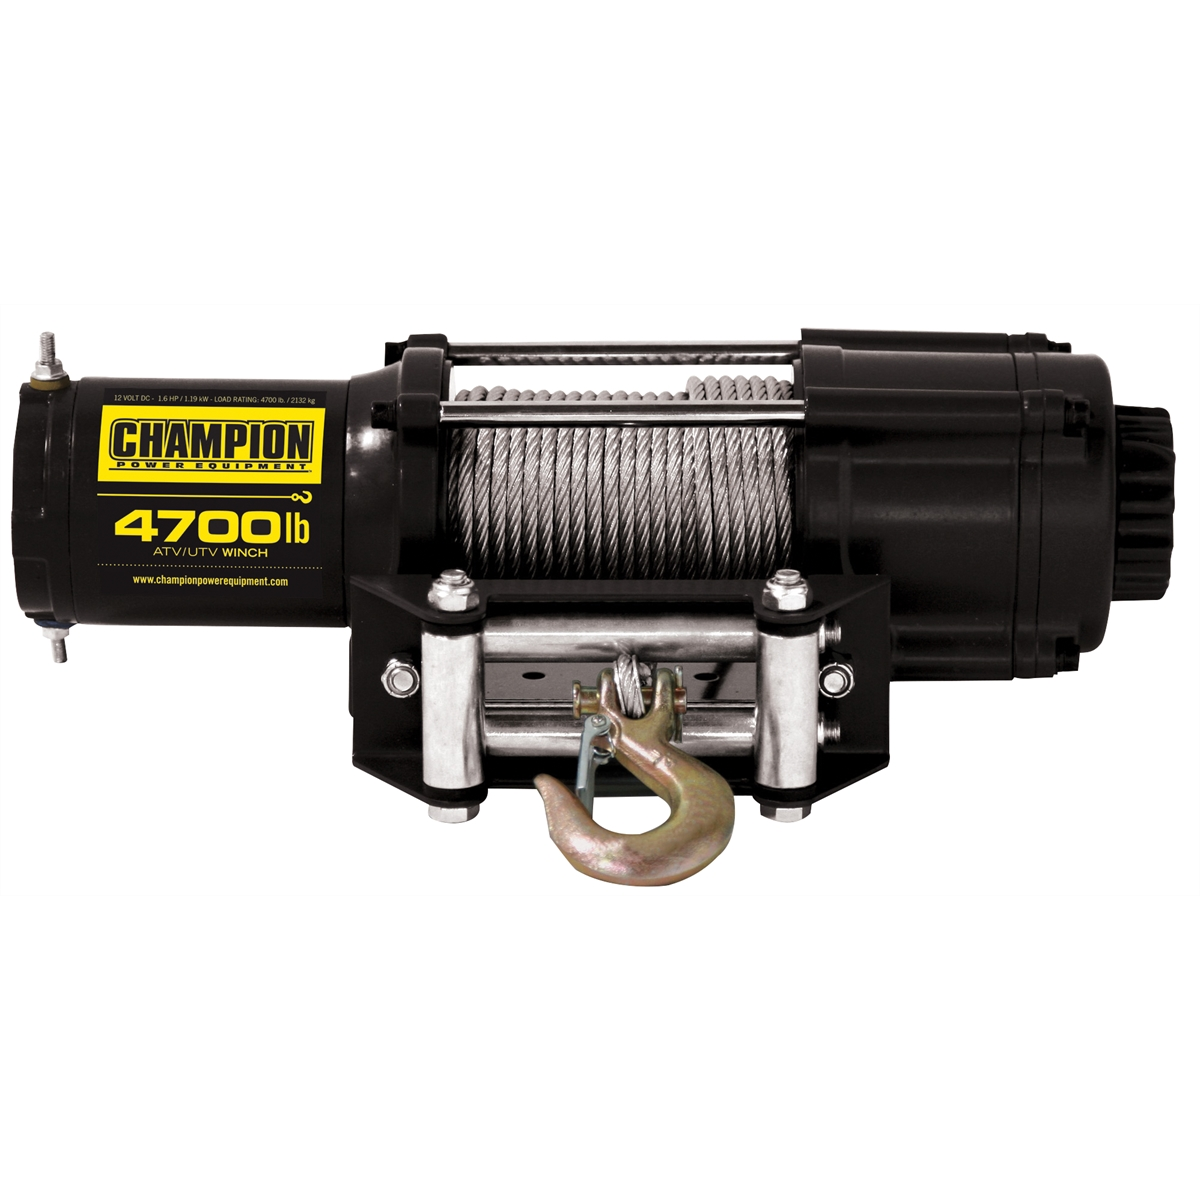 Champion 4700-lb. ATV/UTV Winch Kit